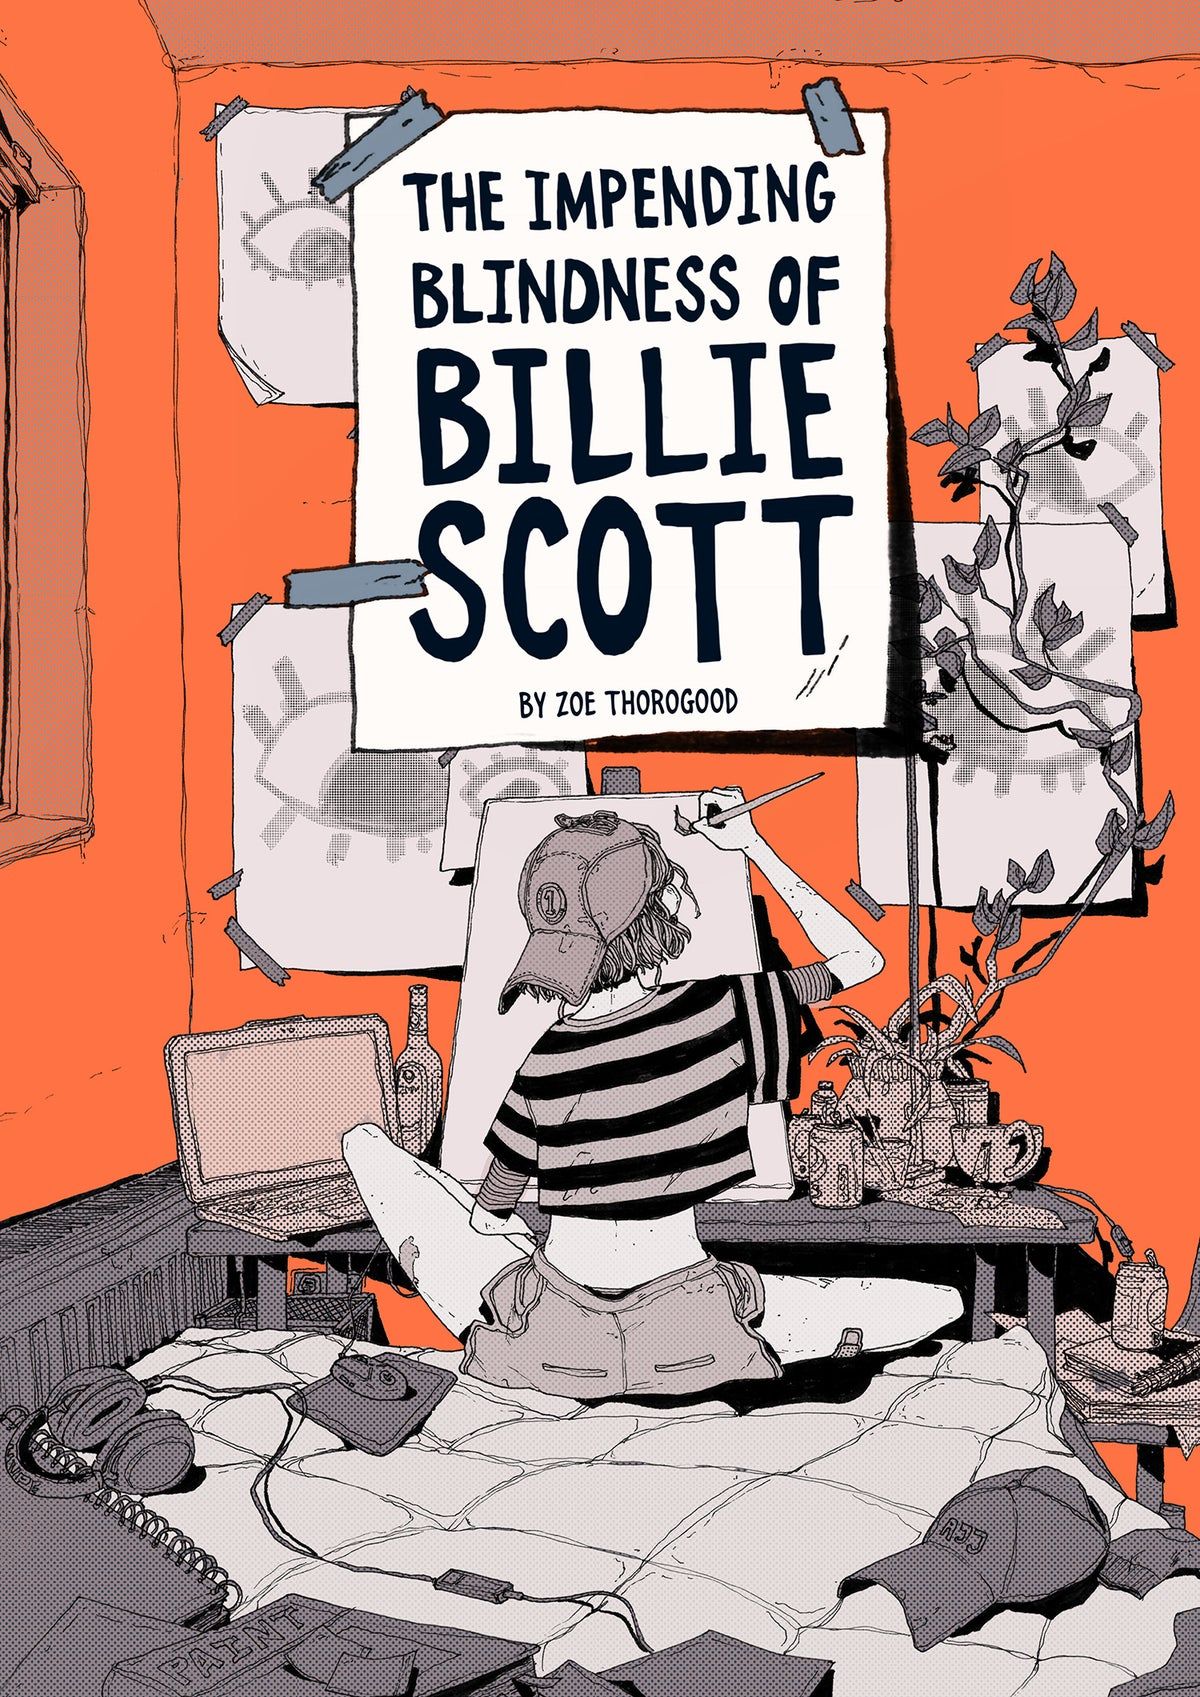 The Impending Blindness Of Billie Scott by Zoe Thorogood - New Edition